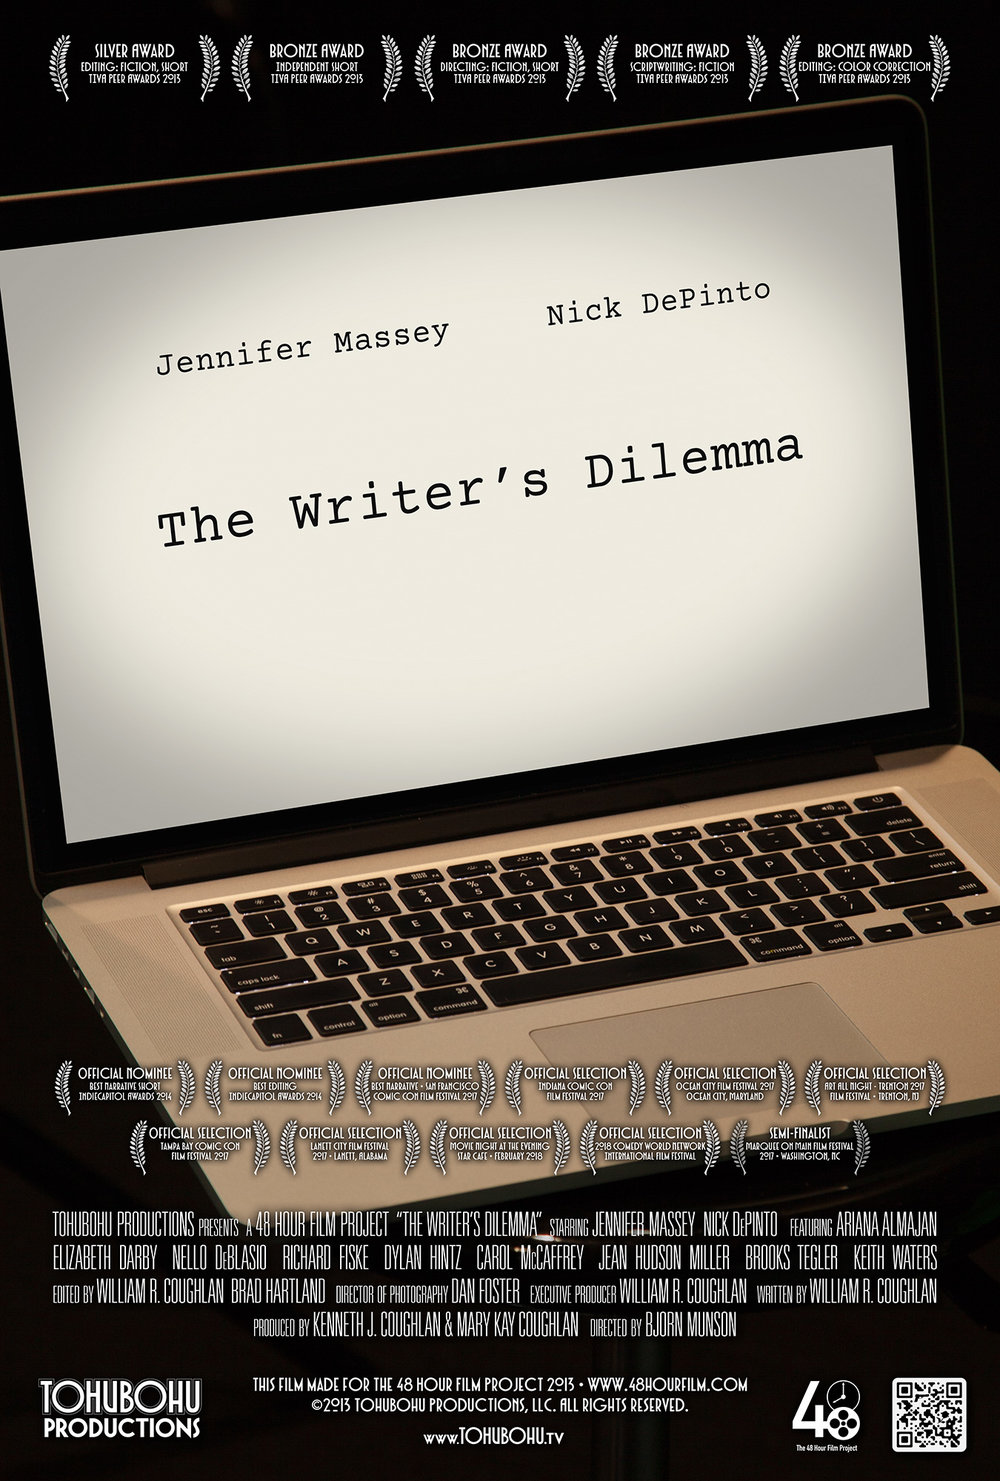 "The Writer's Dilemma - 2013 · 7:50 · written by William R. Coughlan · produced by Kenneth J. Coughlan & Mary Kay Coughlan · directed by Bjorn MunsonAuthors Libby Daricek and Mark LaSalle are each working to finish their respective novels — Mark's being a crime thriller, and Libby's an emotional drama. But as they describe scenes from their works (and propose changes to their pieces), their collaborative relationship is put to the test, especially as they learn they may be competing for the same goal.Tohubohu returned to the 48 Hour Film Project in 2013 with Bjorn Munson in the director's chair for ""The Writer's Dilemma,"" a buddy film featuring a wide cast anchored by Tohubohu veterans Jennifer Massey and Nick DePinto. The film was created entirely across the weekend of May 3th through the 5th, 2013, and premiered at the AFI Silver Theatre on Saturday, May 11th. Frequent Tohubohu director William R. Coughlan took on scriptwriting duties (his first solo Tohubohu scriptwriting effort since 2004's ""Loose Ends."""